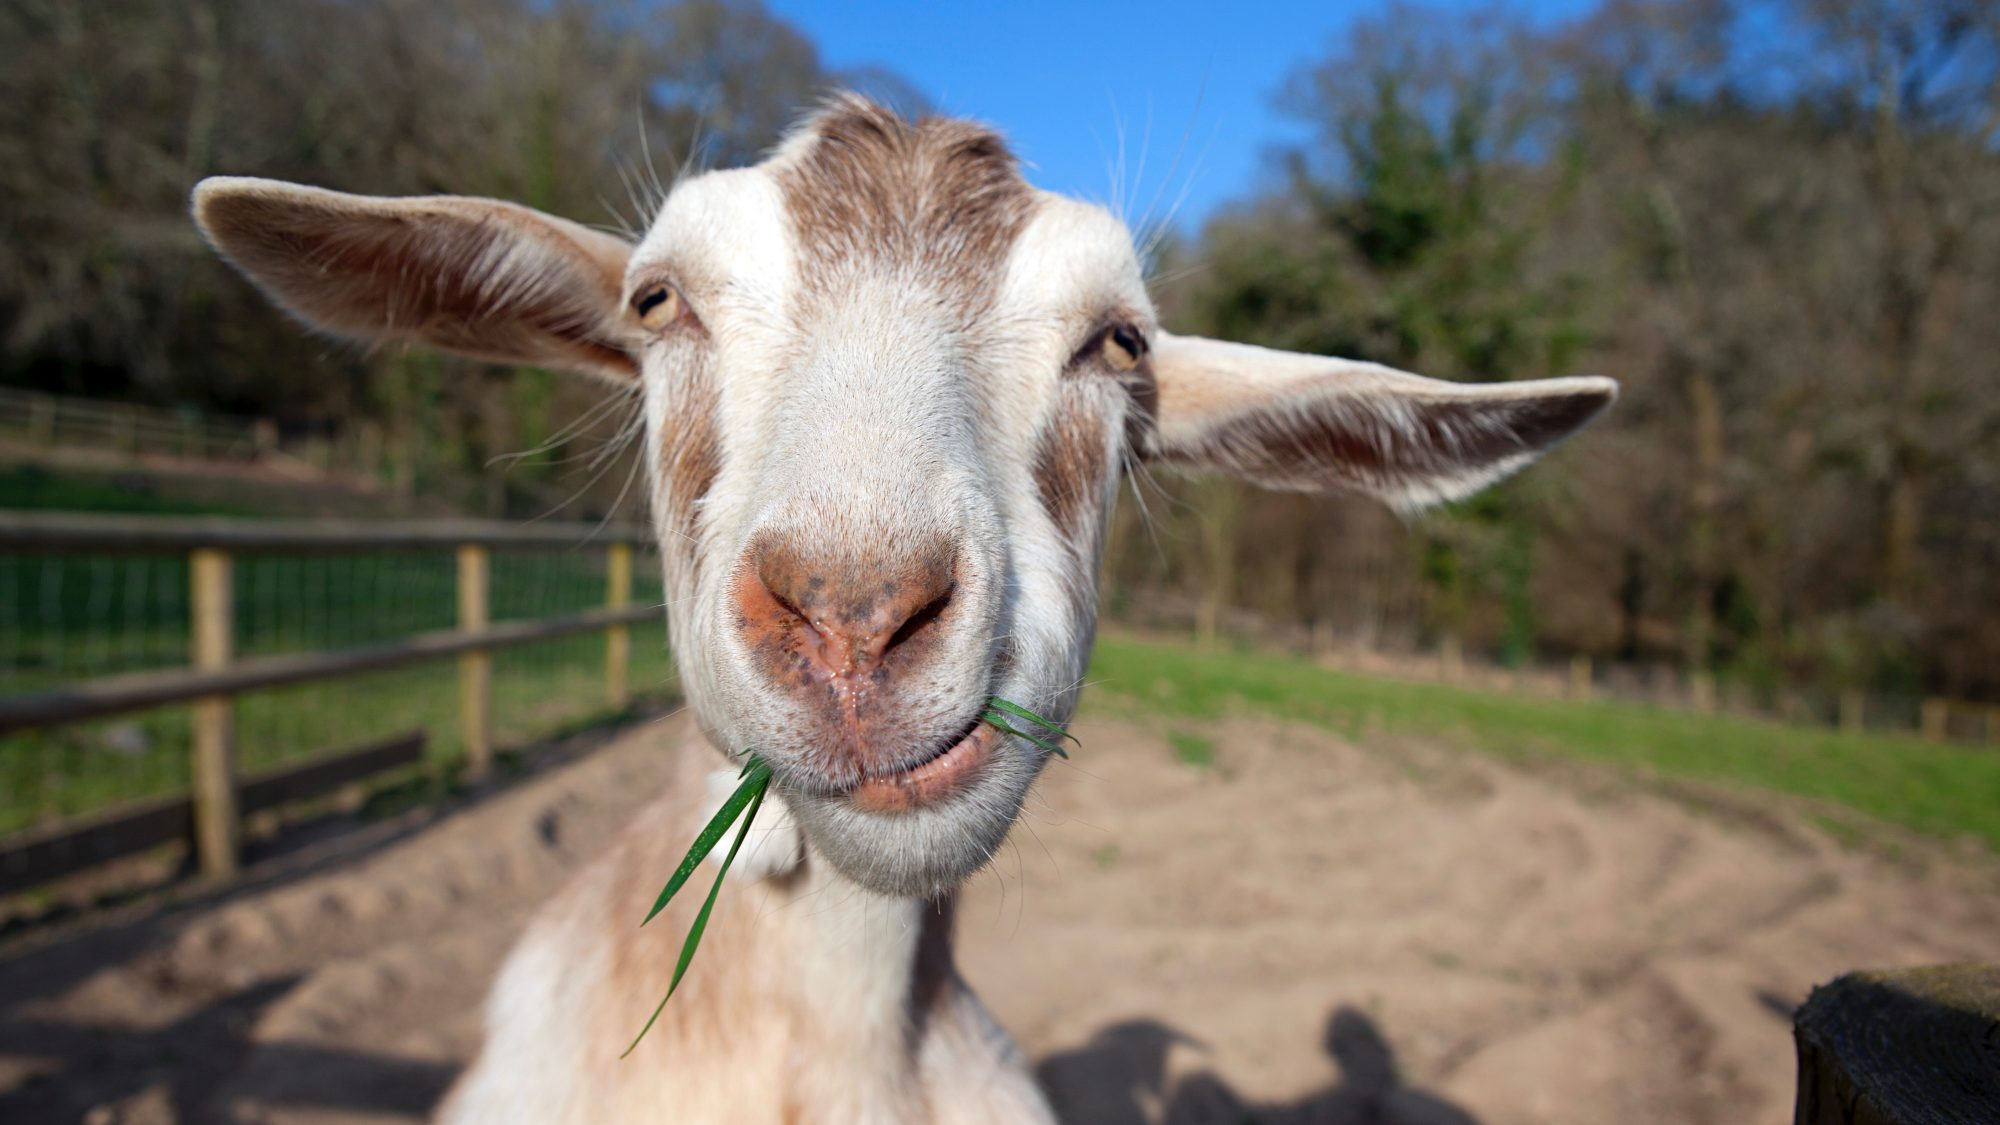 Is it possible to goat milk to children